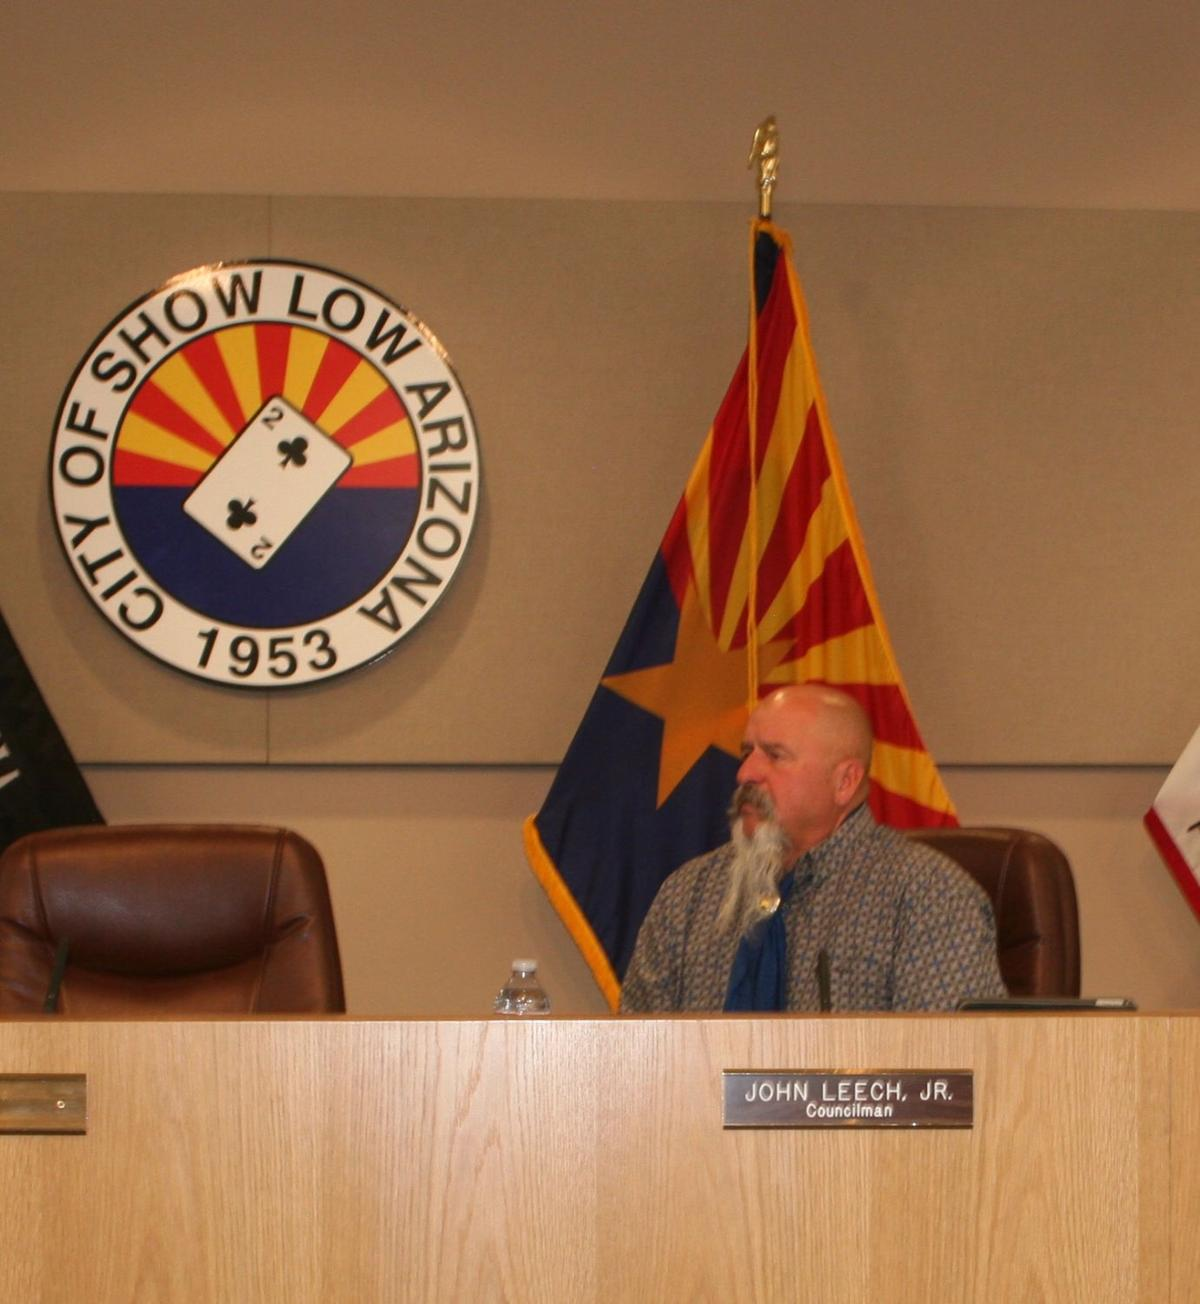 Show Low city council meeting